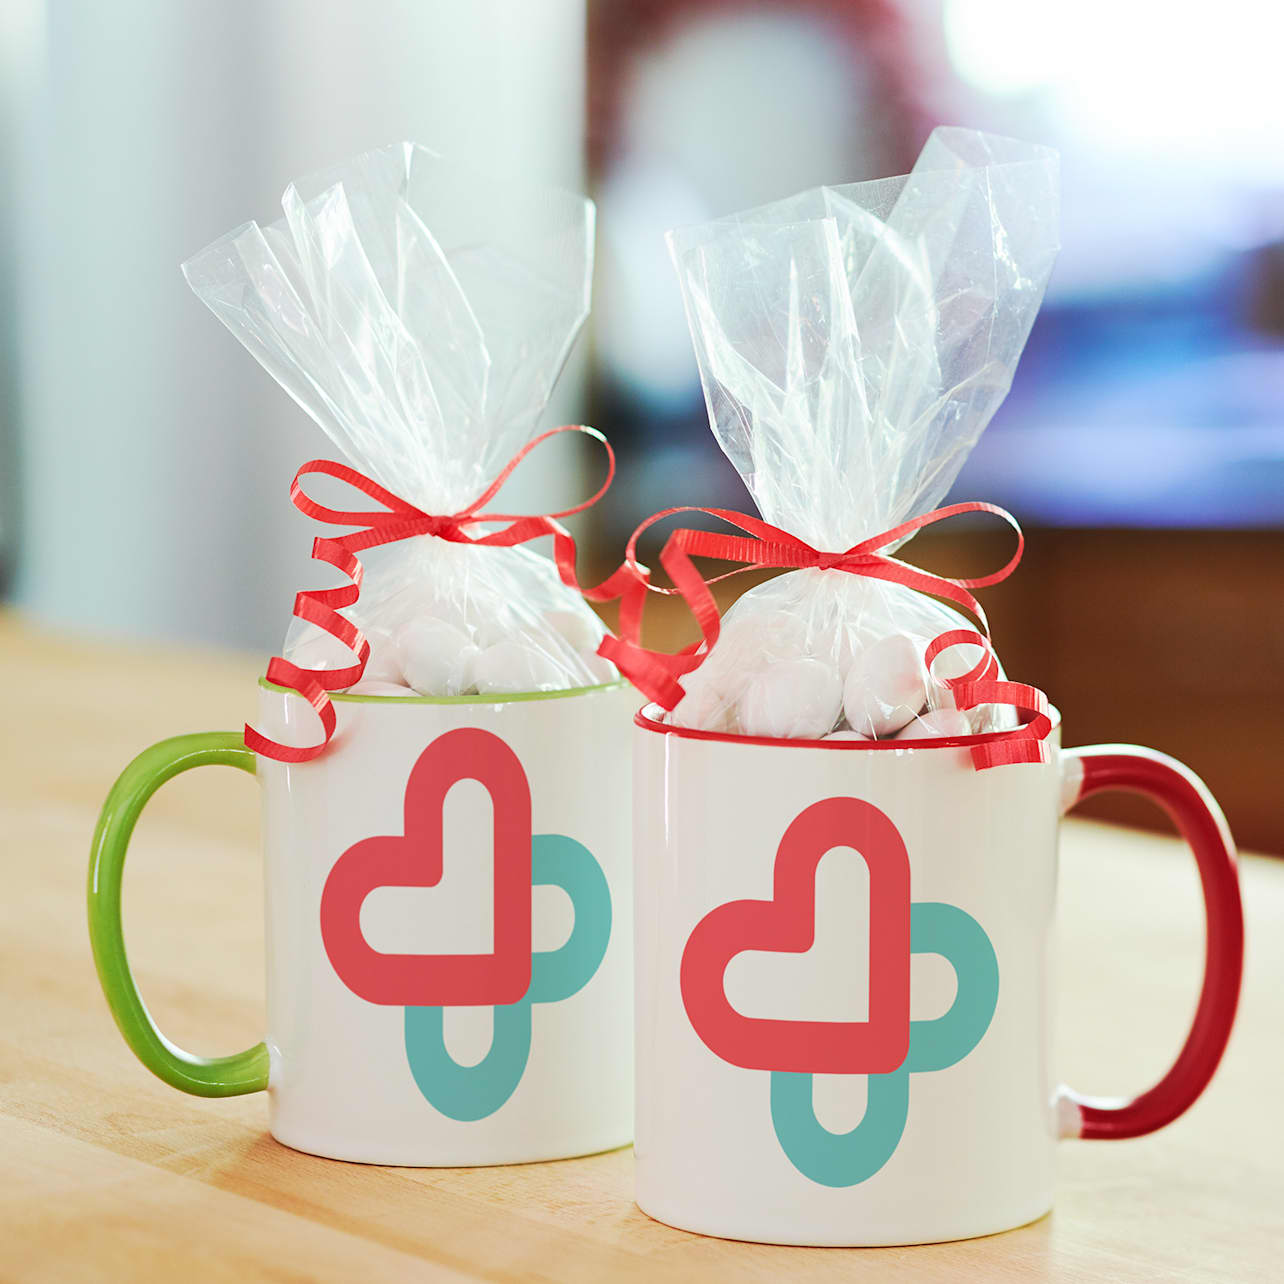 Local chocolate client gift idea